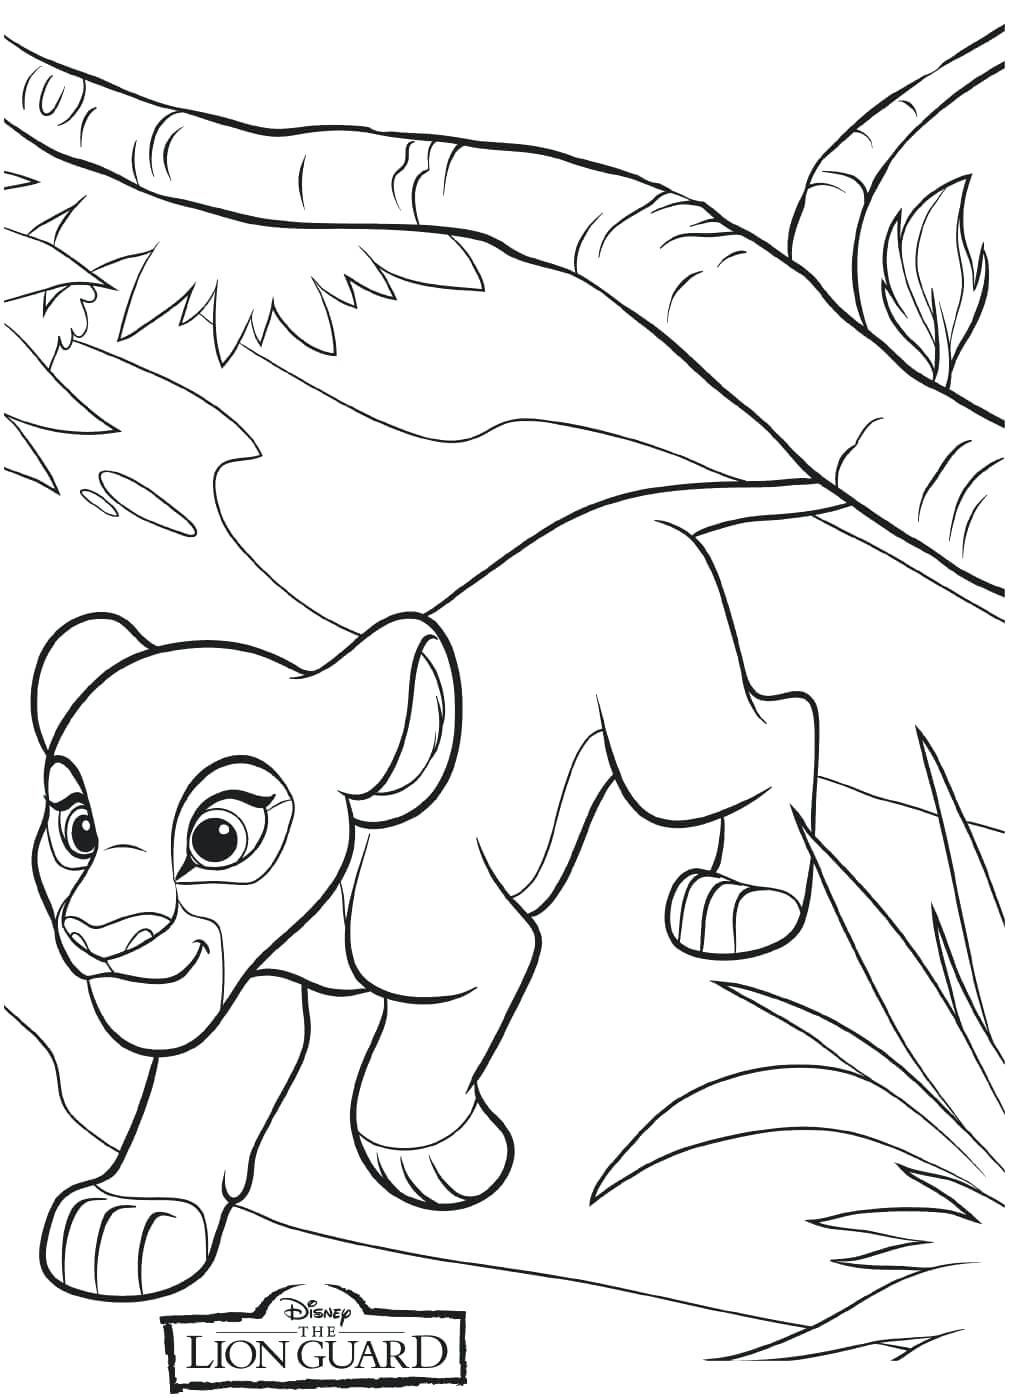 Lion Guard Coloring Pages - Best Coloring Pages For Kids